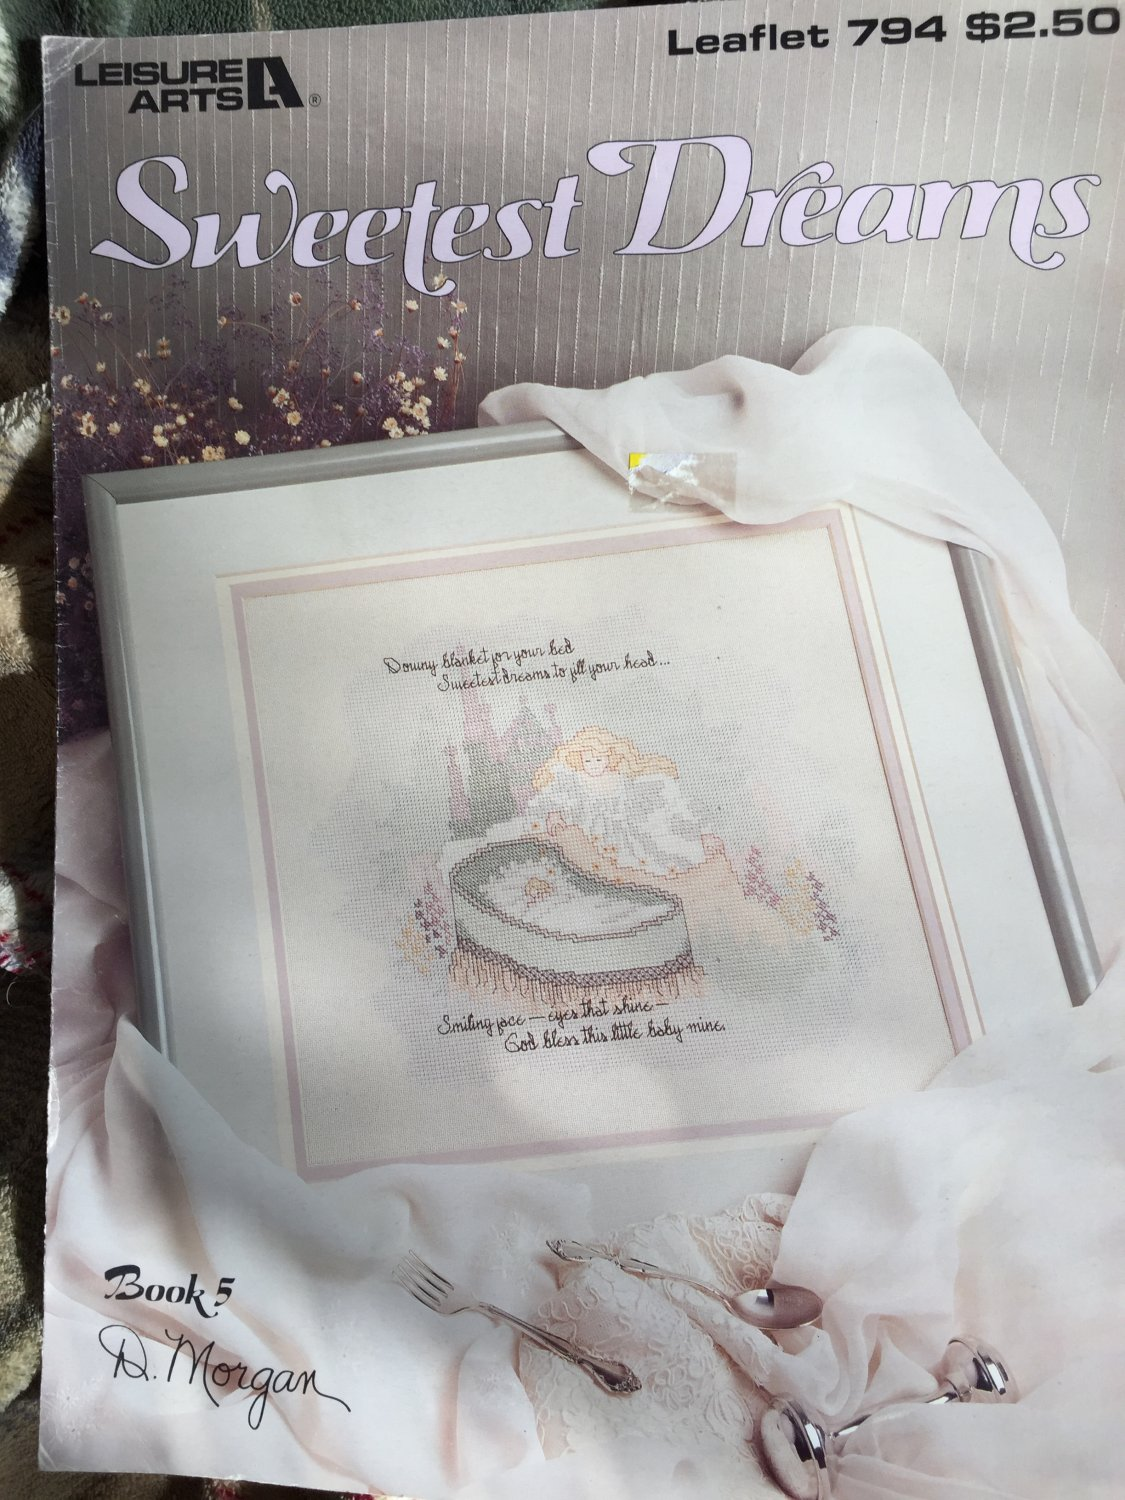 Leisure Arts 794 Sweetest Dreams Cross Stitch pattern graph Baby Poem